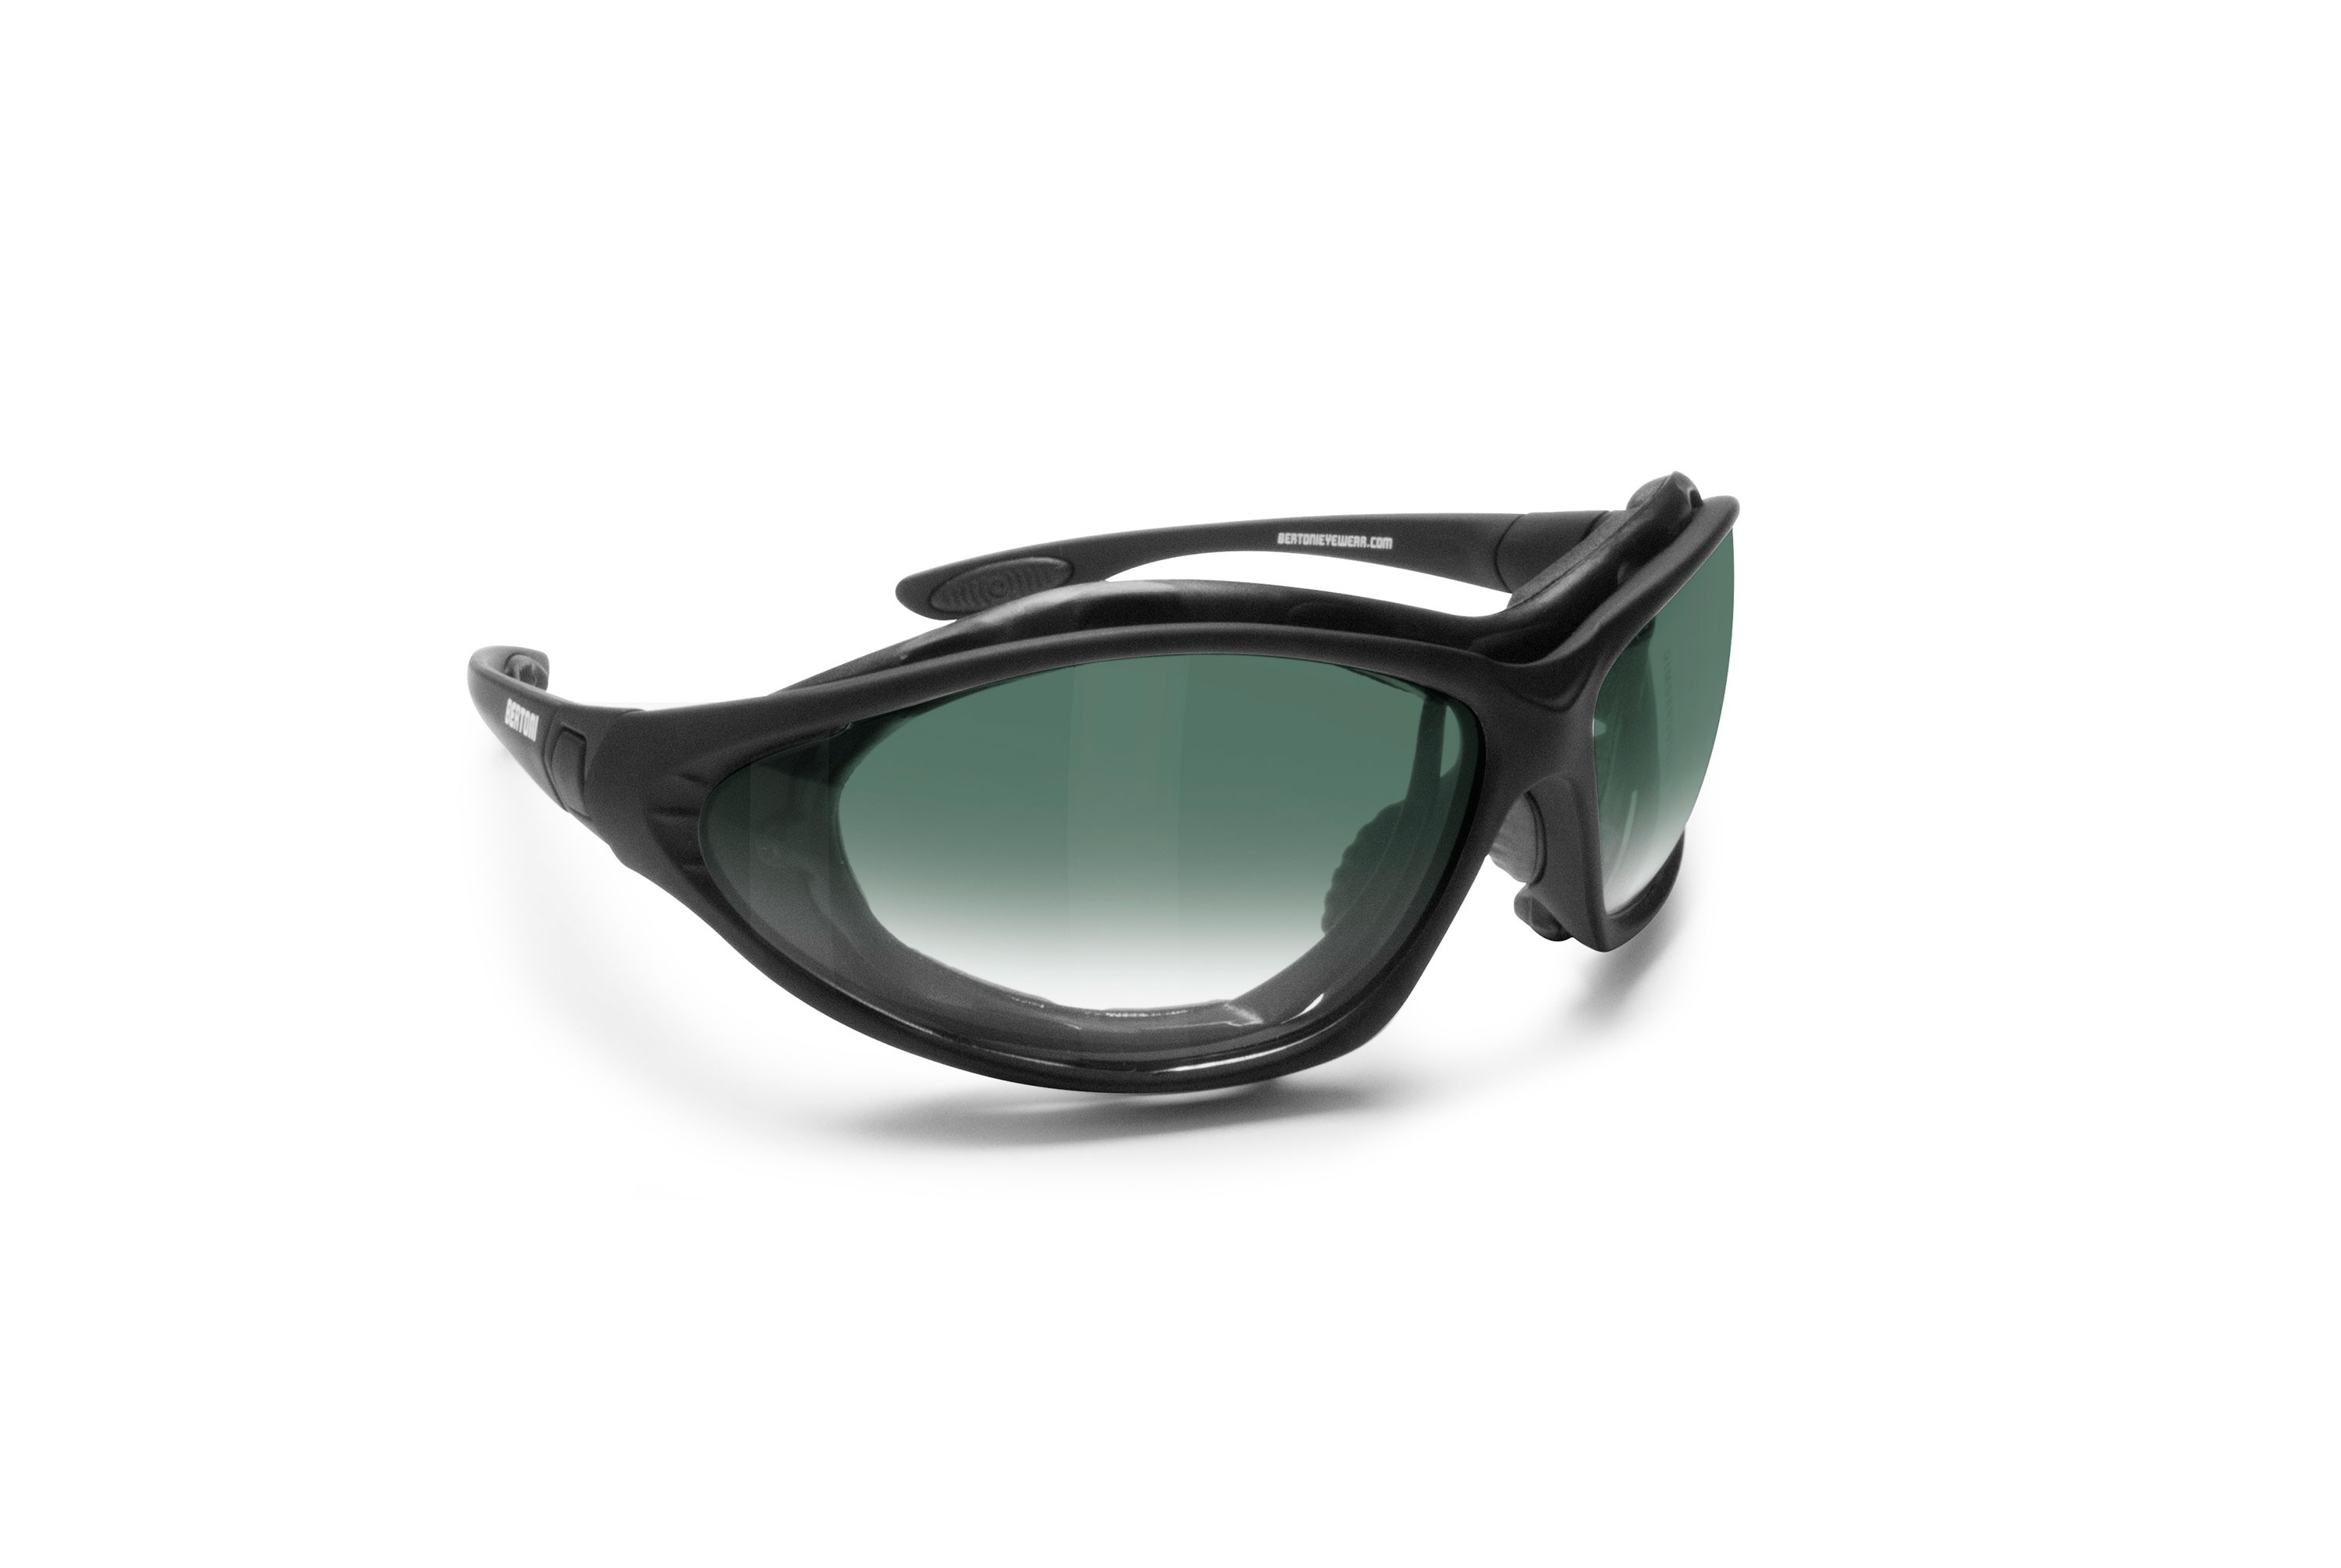 Motorcycle Goggles Convertible with Mask with Anti-Fog Lenses by Bertoni Italy - FT333B